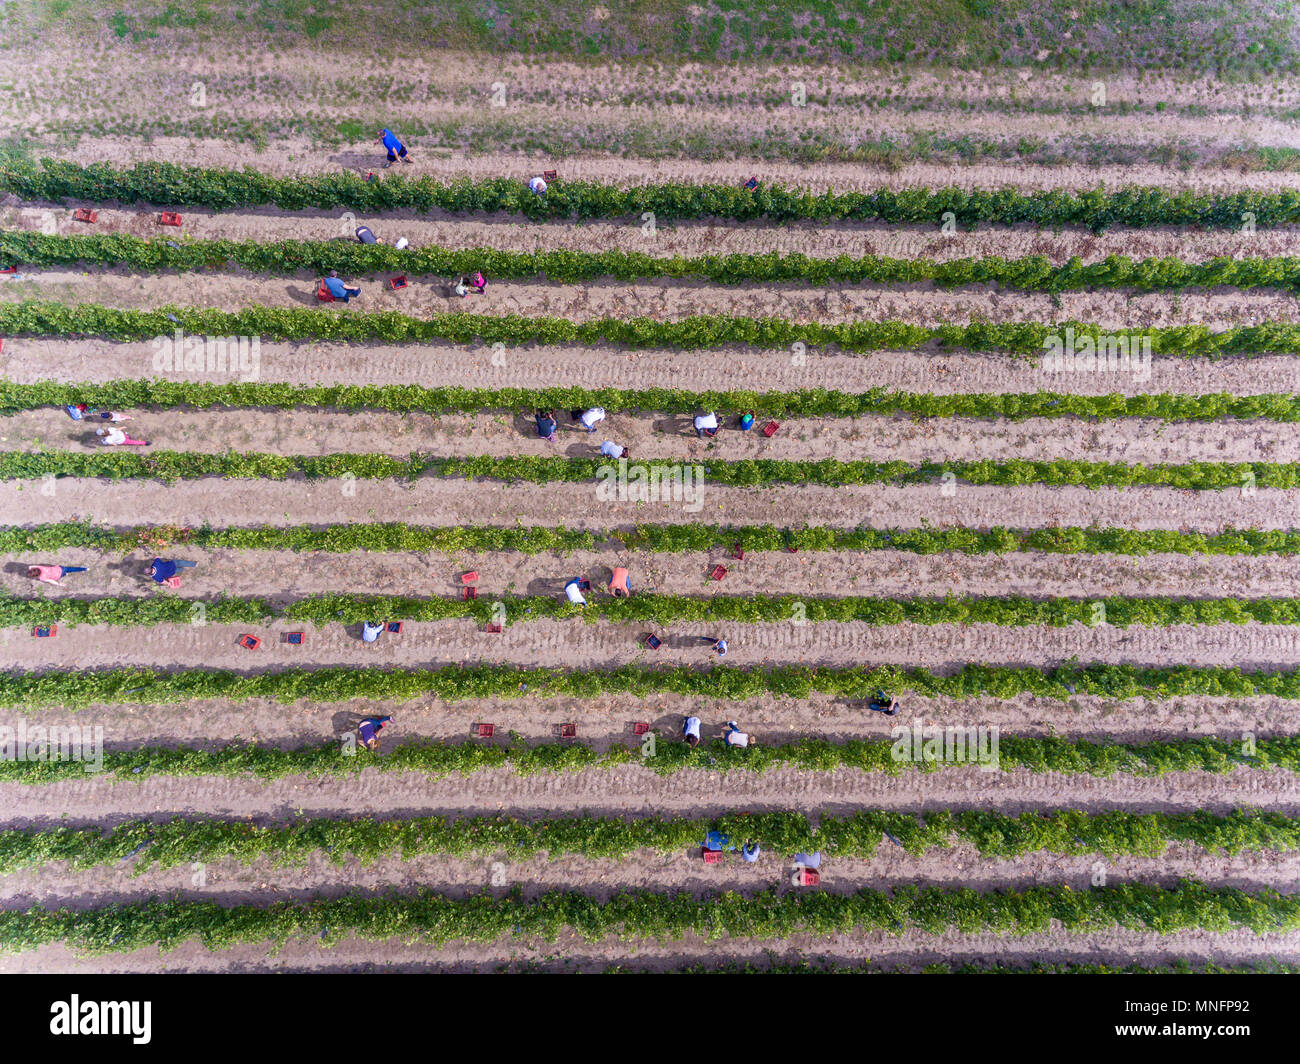 Workers harvesting in vineyard, aerial view from above - Stock Image